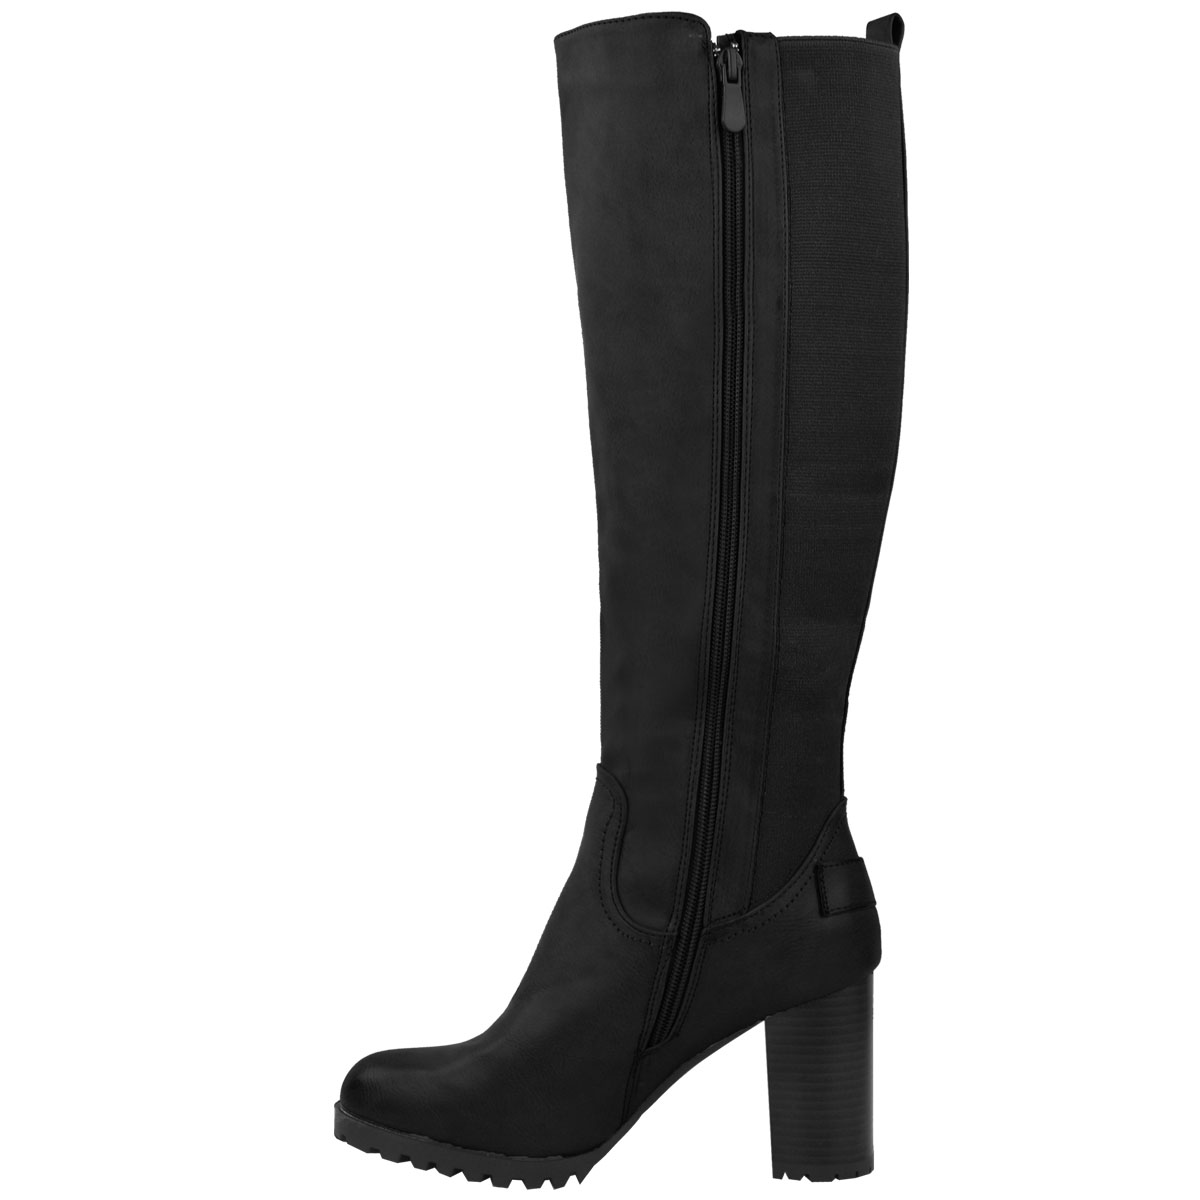 Womens-Ladies-Knee-Calf-High-Boots-Block-Heels-Stretchy-Thigh-Shoes-Grip-Size thumbnail 4